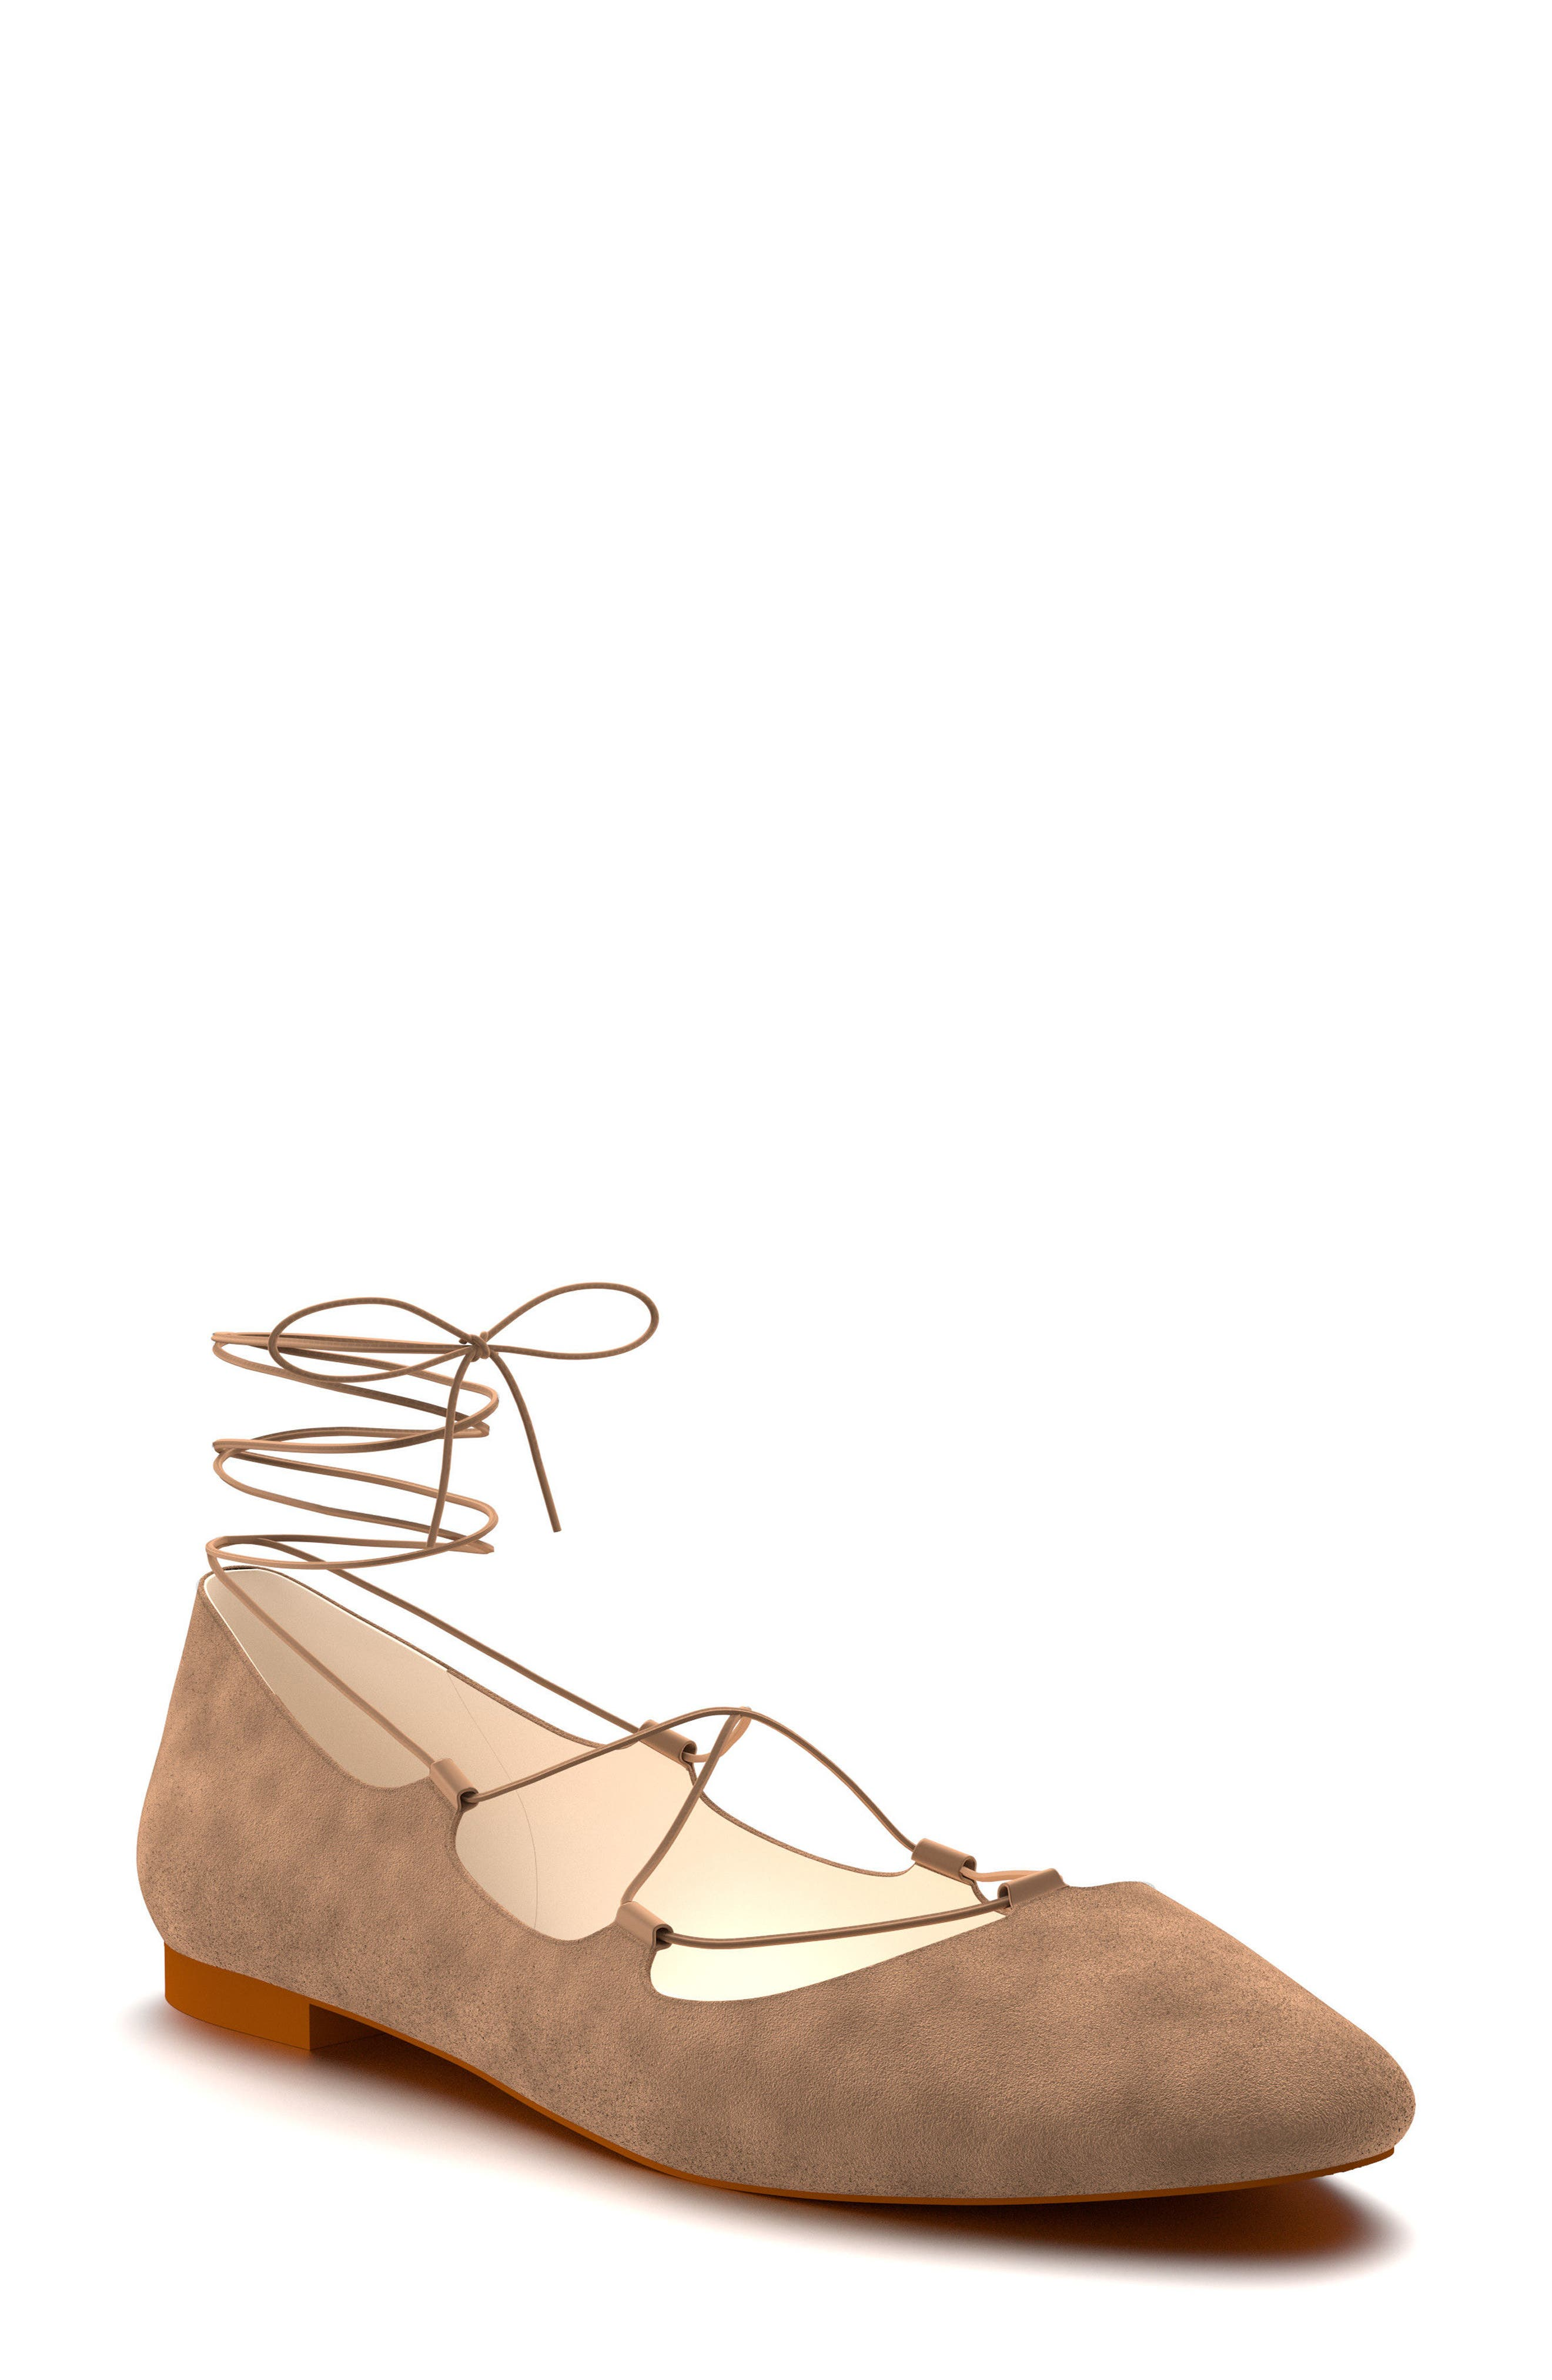 Ghillie Pointy Toe Ballet Flat,                         Main,                         color, Tan Suede